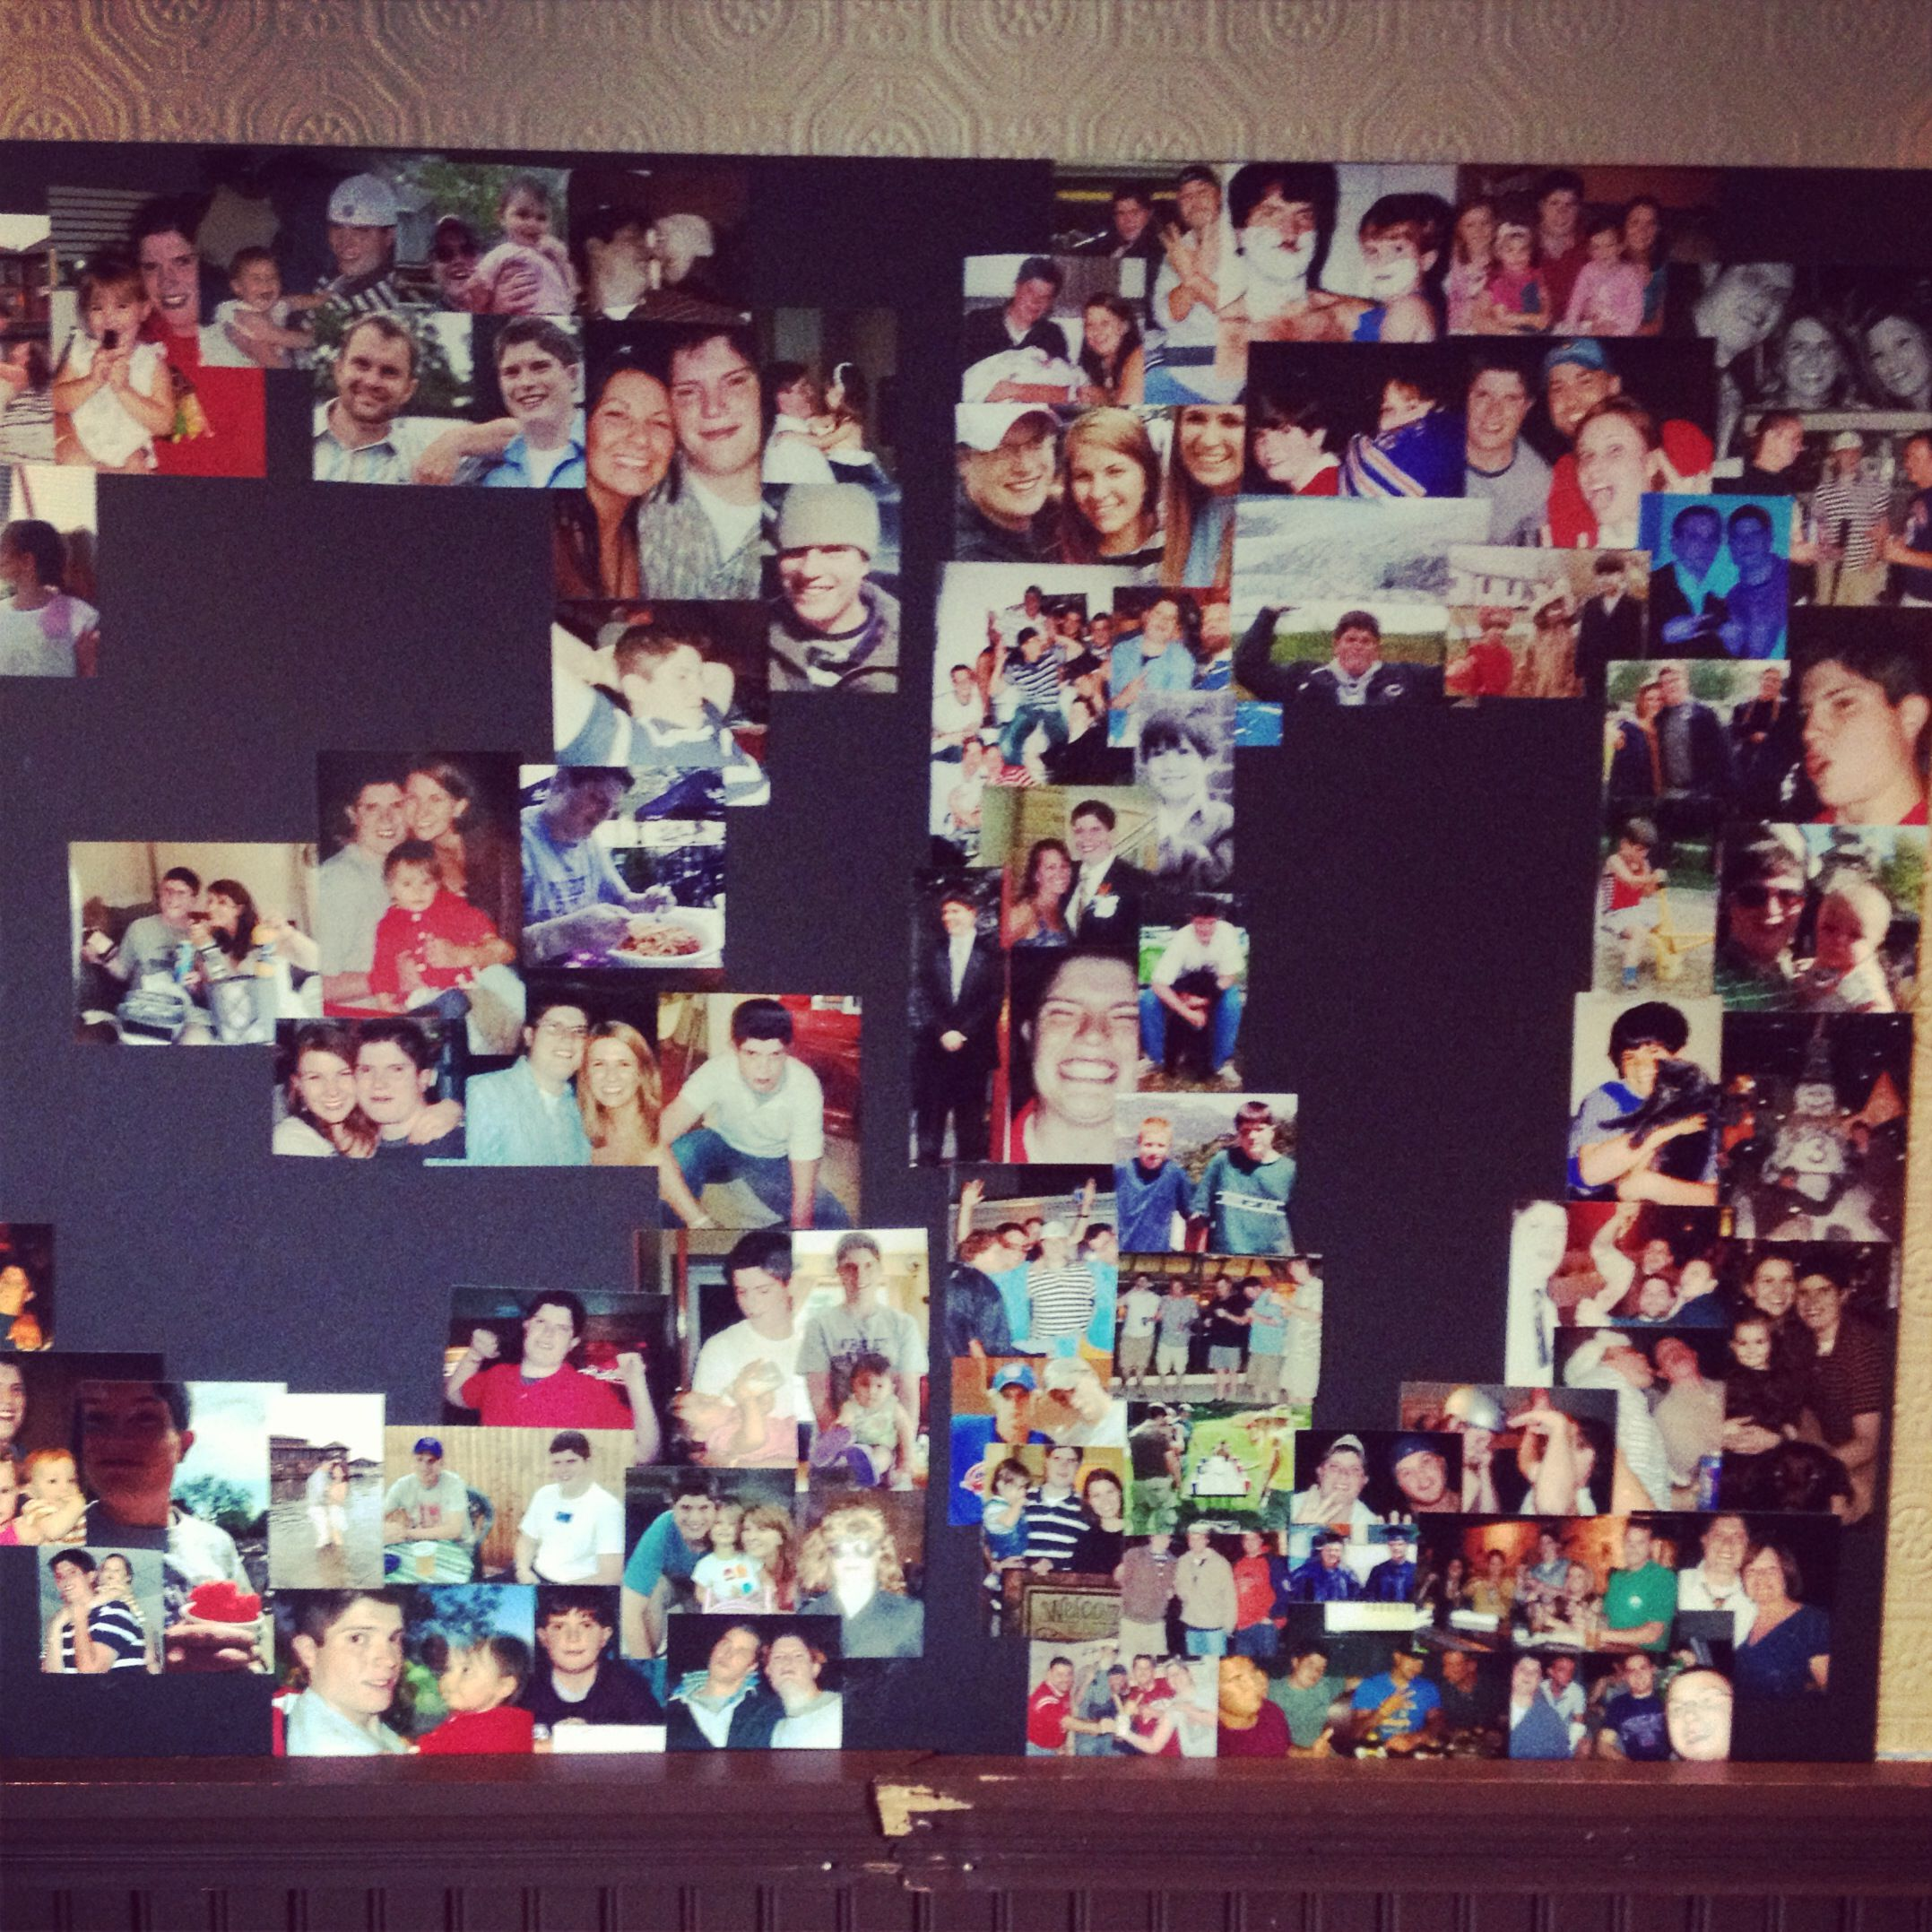 picture collage ideas for birthday party ; 0f56deb7beba3d4257981926eab91baa